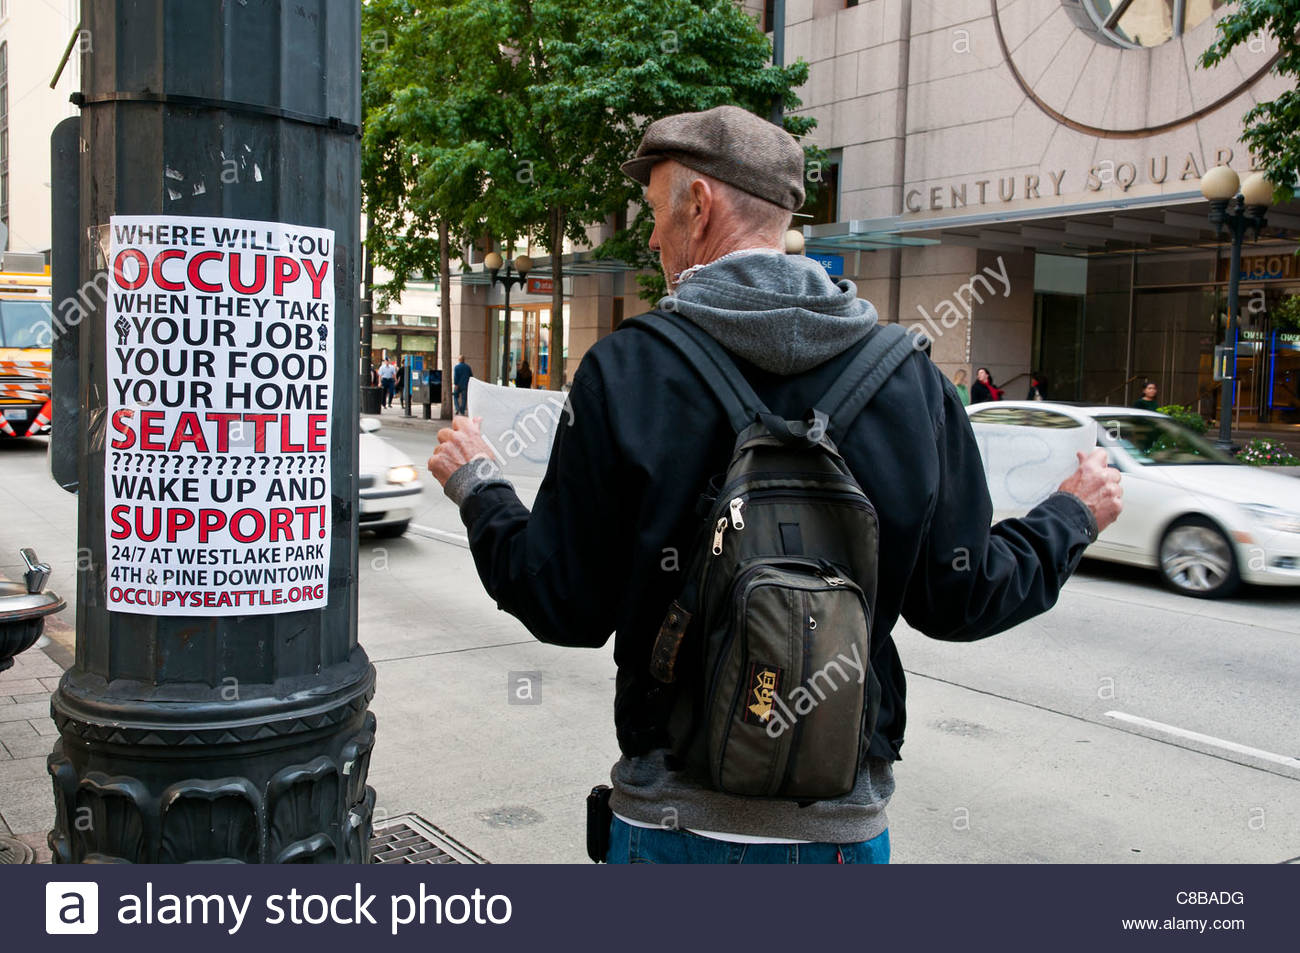 Caucasian adult male holding protest sign during Occupy Seattle march, Westlake Park, Seattle, Washington, USA - Stock Image